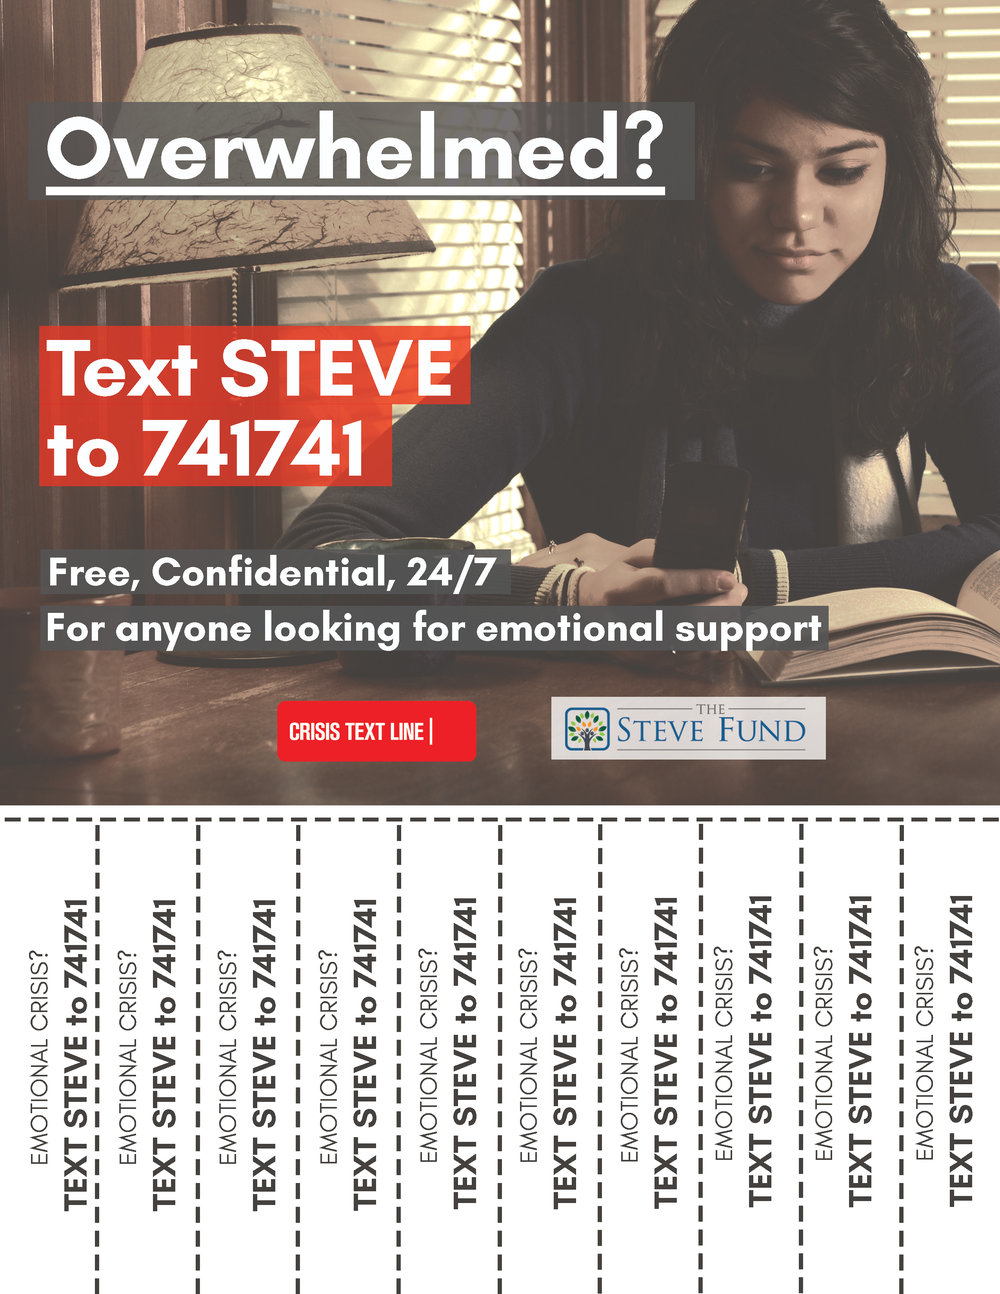 Female Student Texting Overwhelmed Tear Off Flyer 3.14.17.jpg